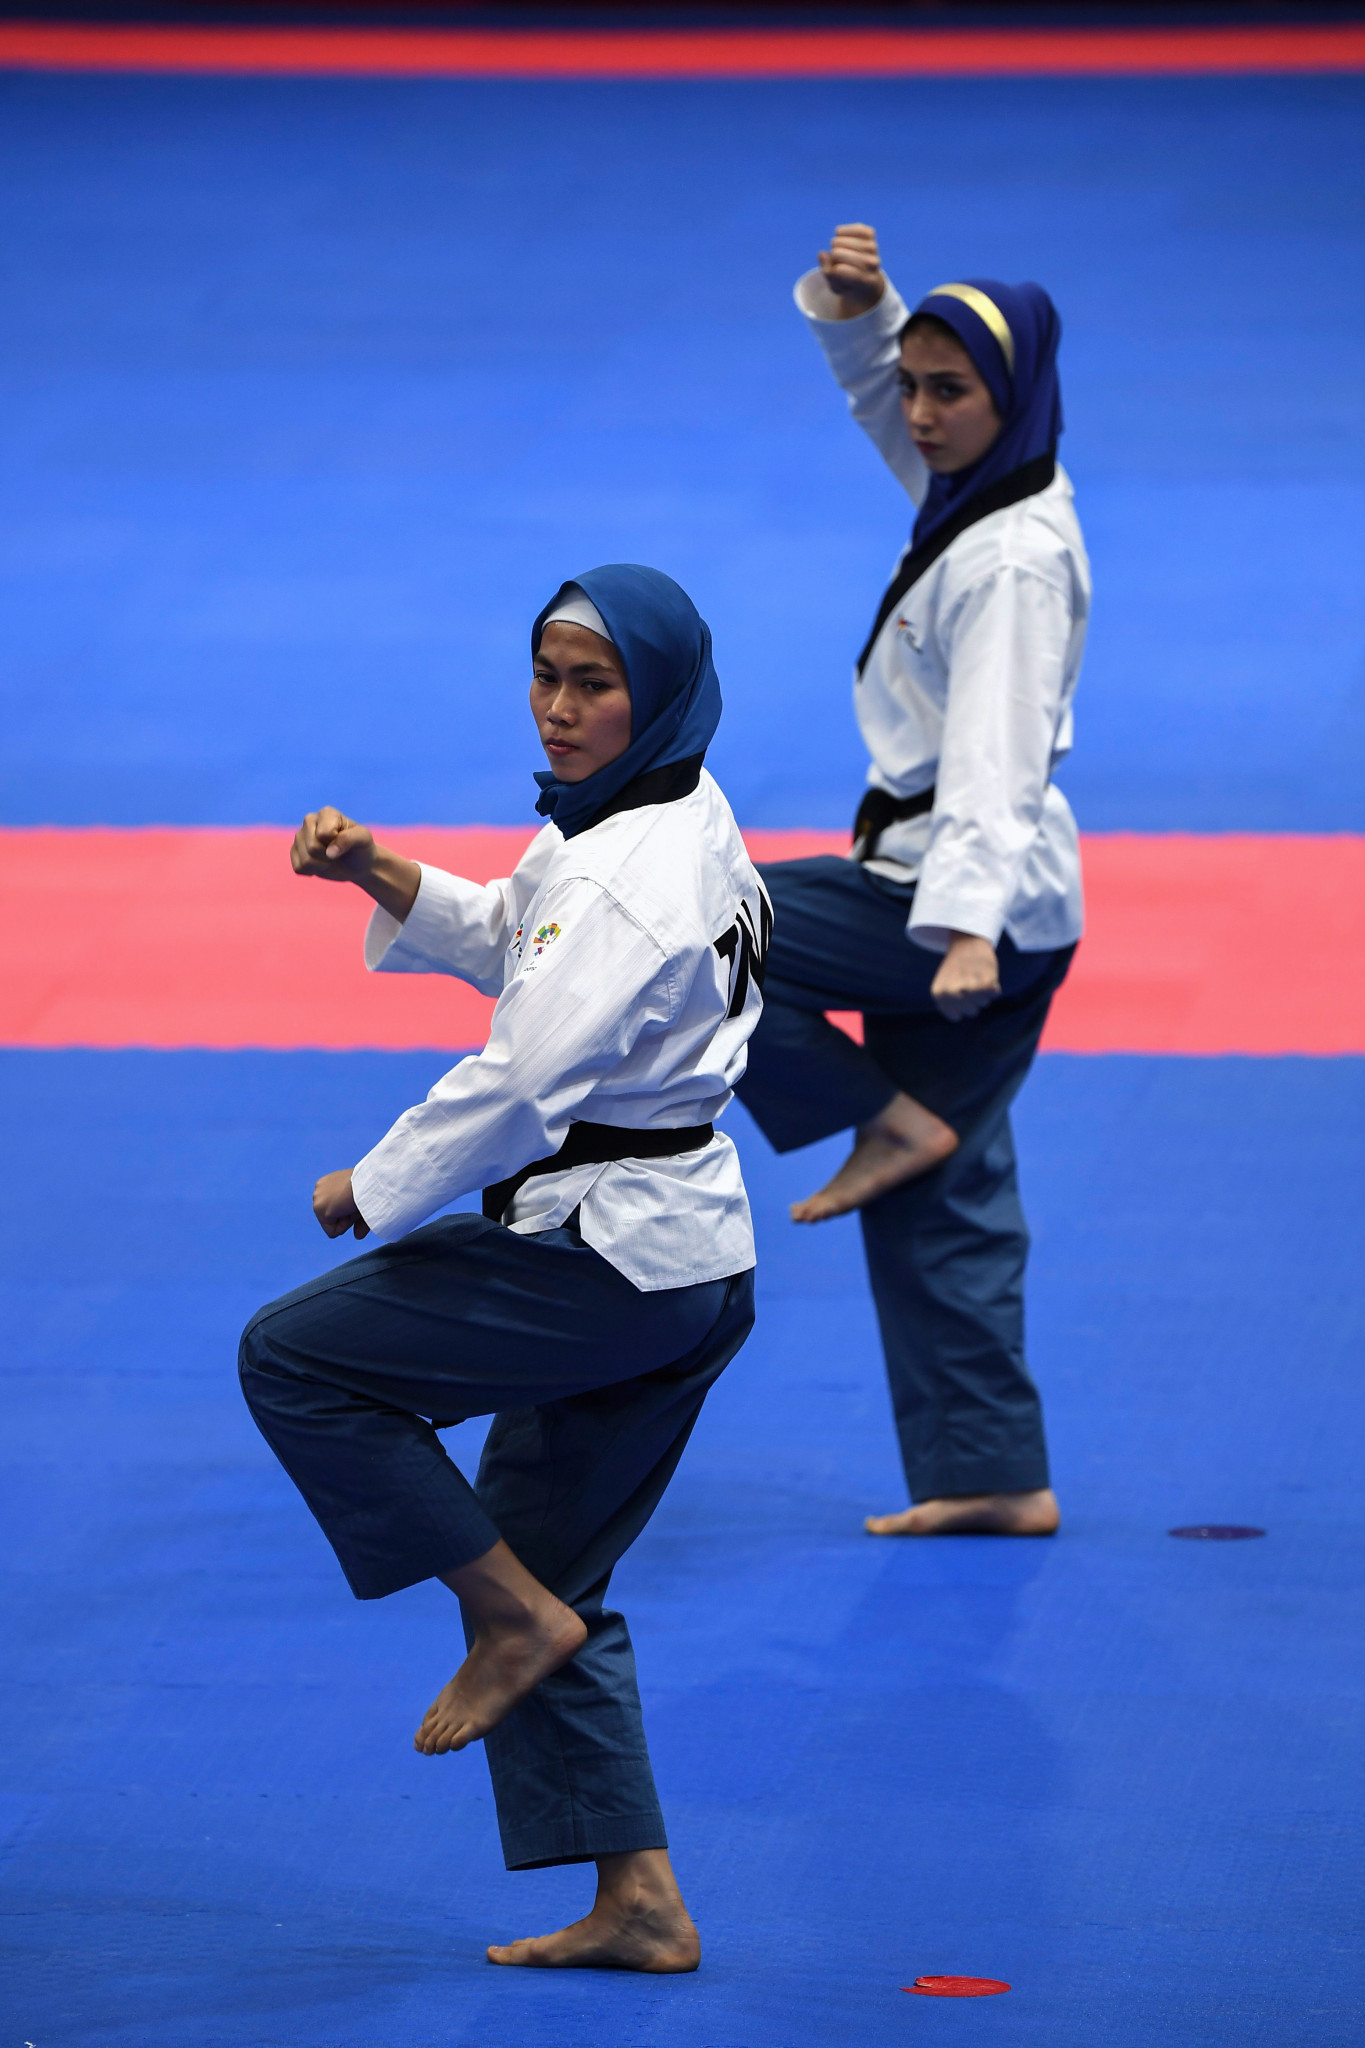 The coach appointed will work at the World Poomsae Championships ©Getty Images